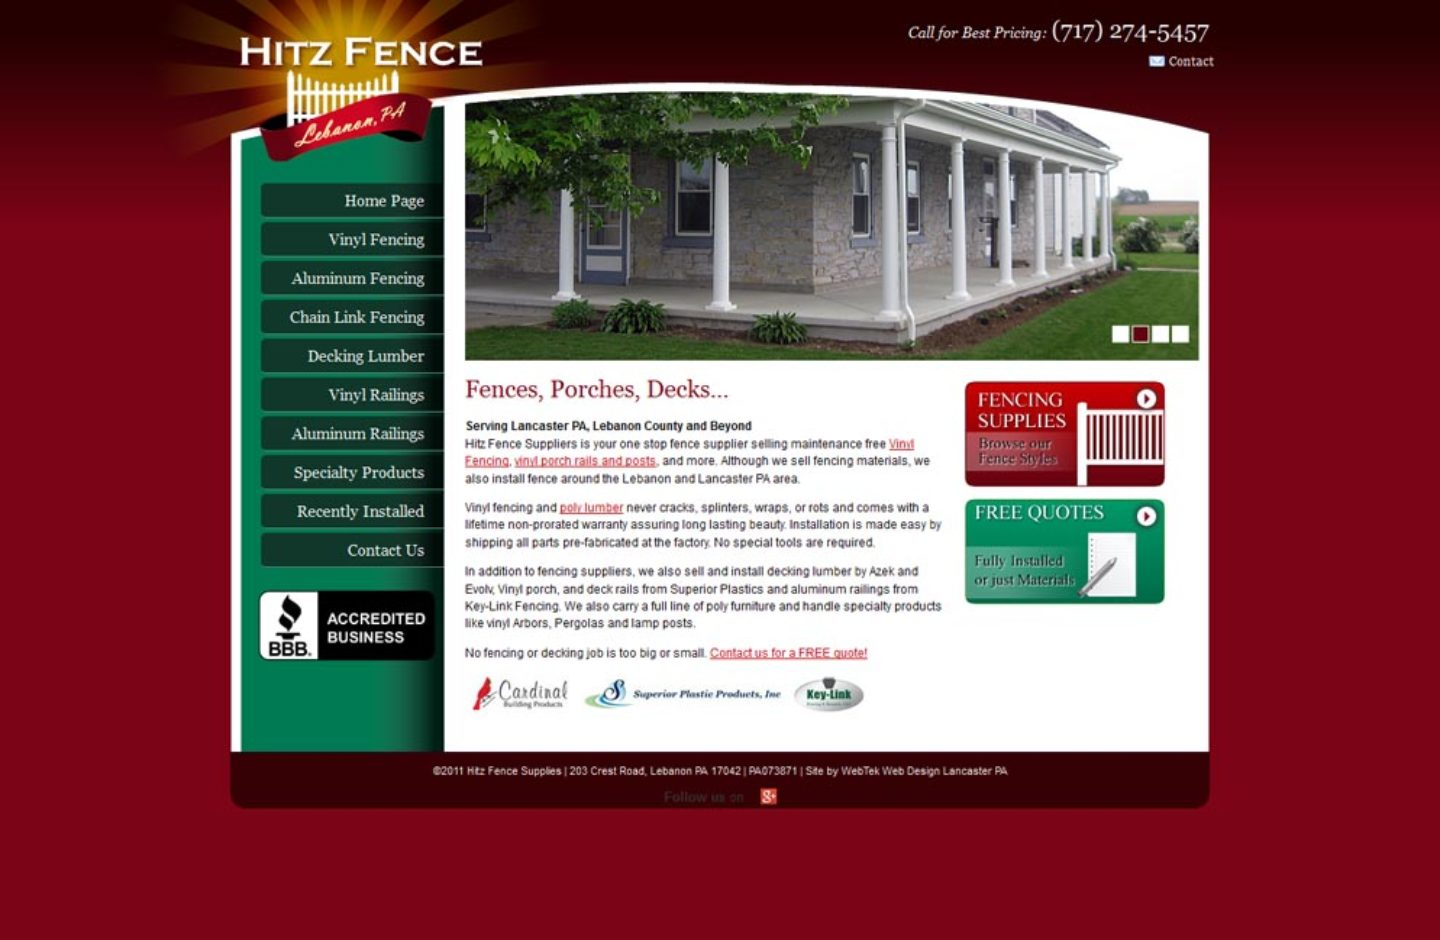 Hitz Fence Supplies